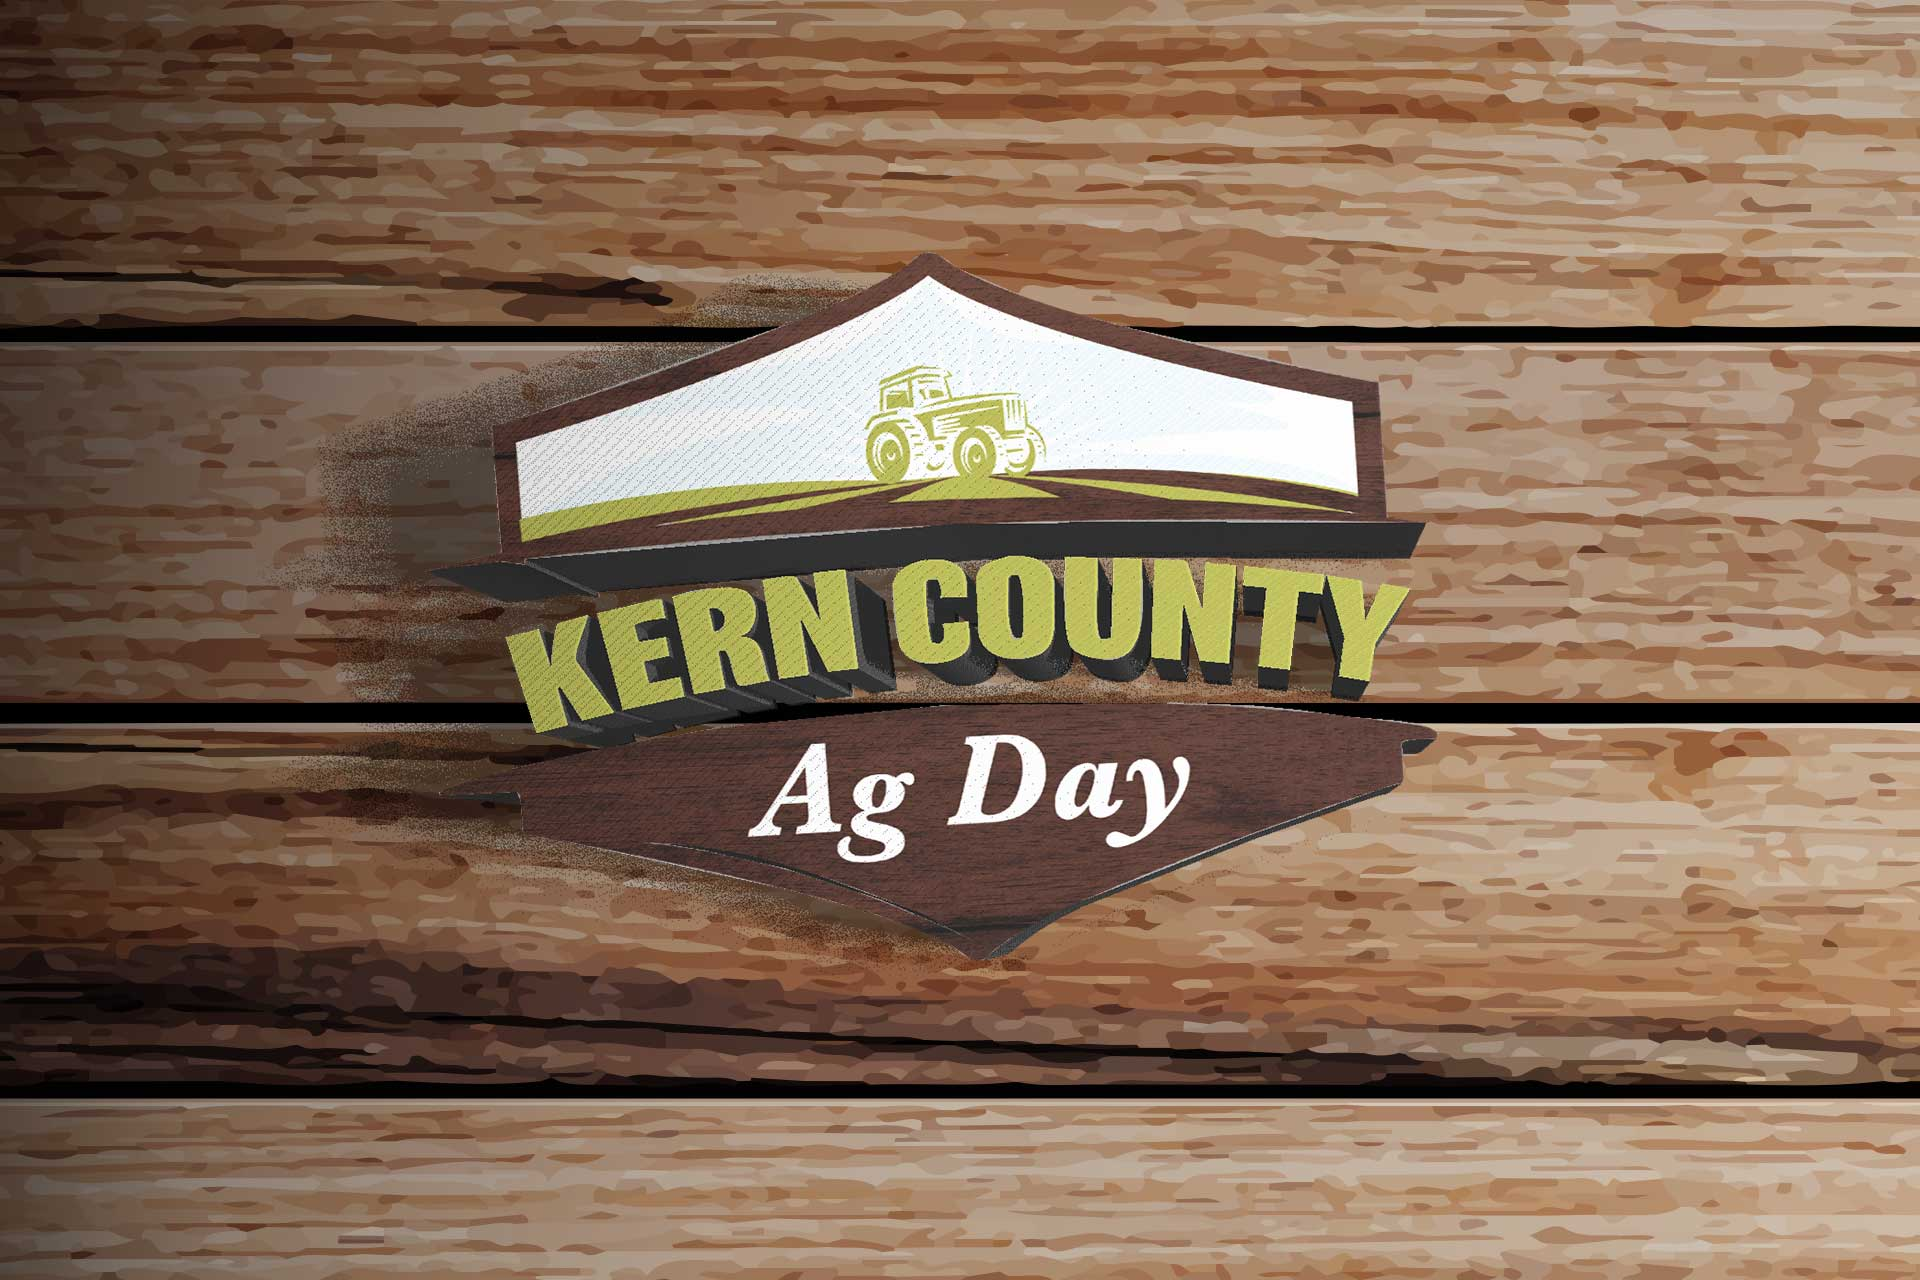 Kern County Ag Day